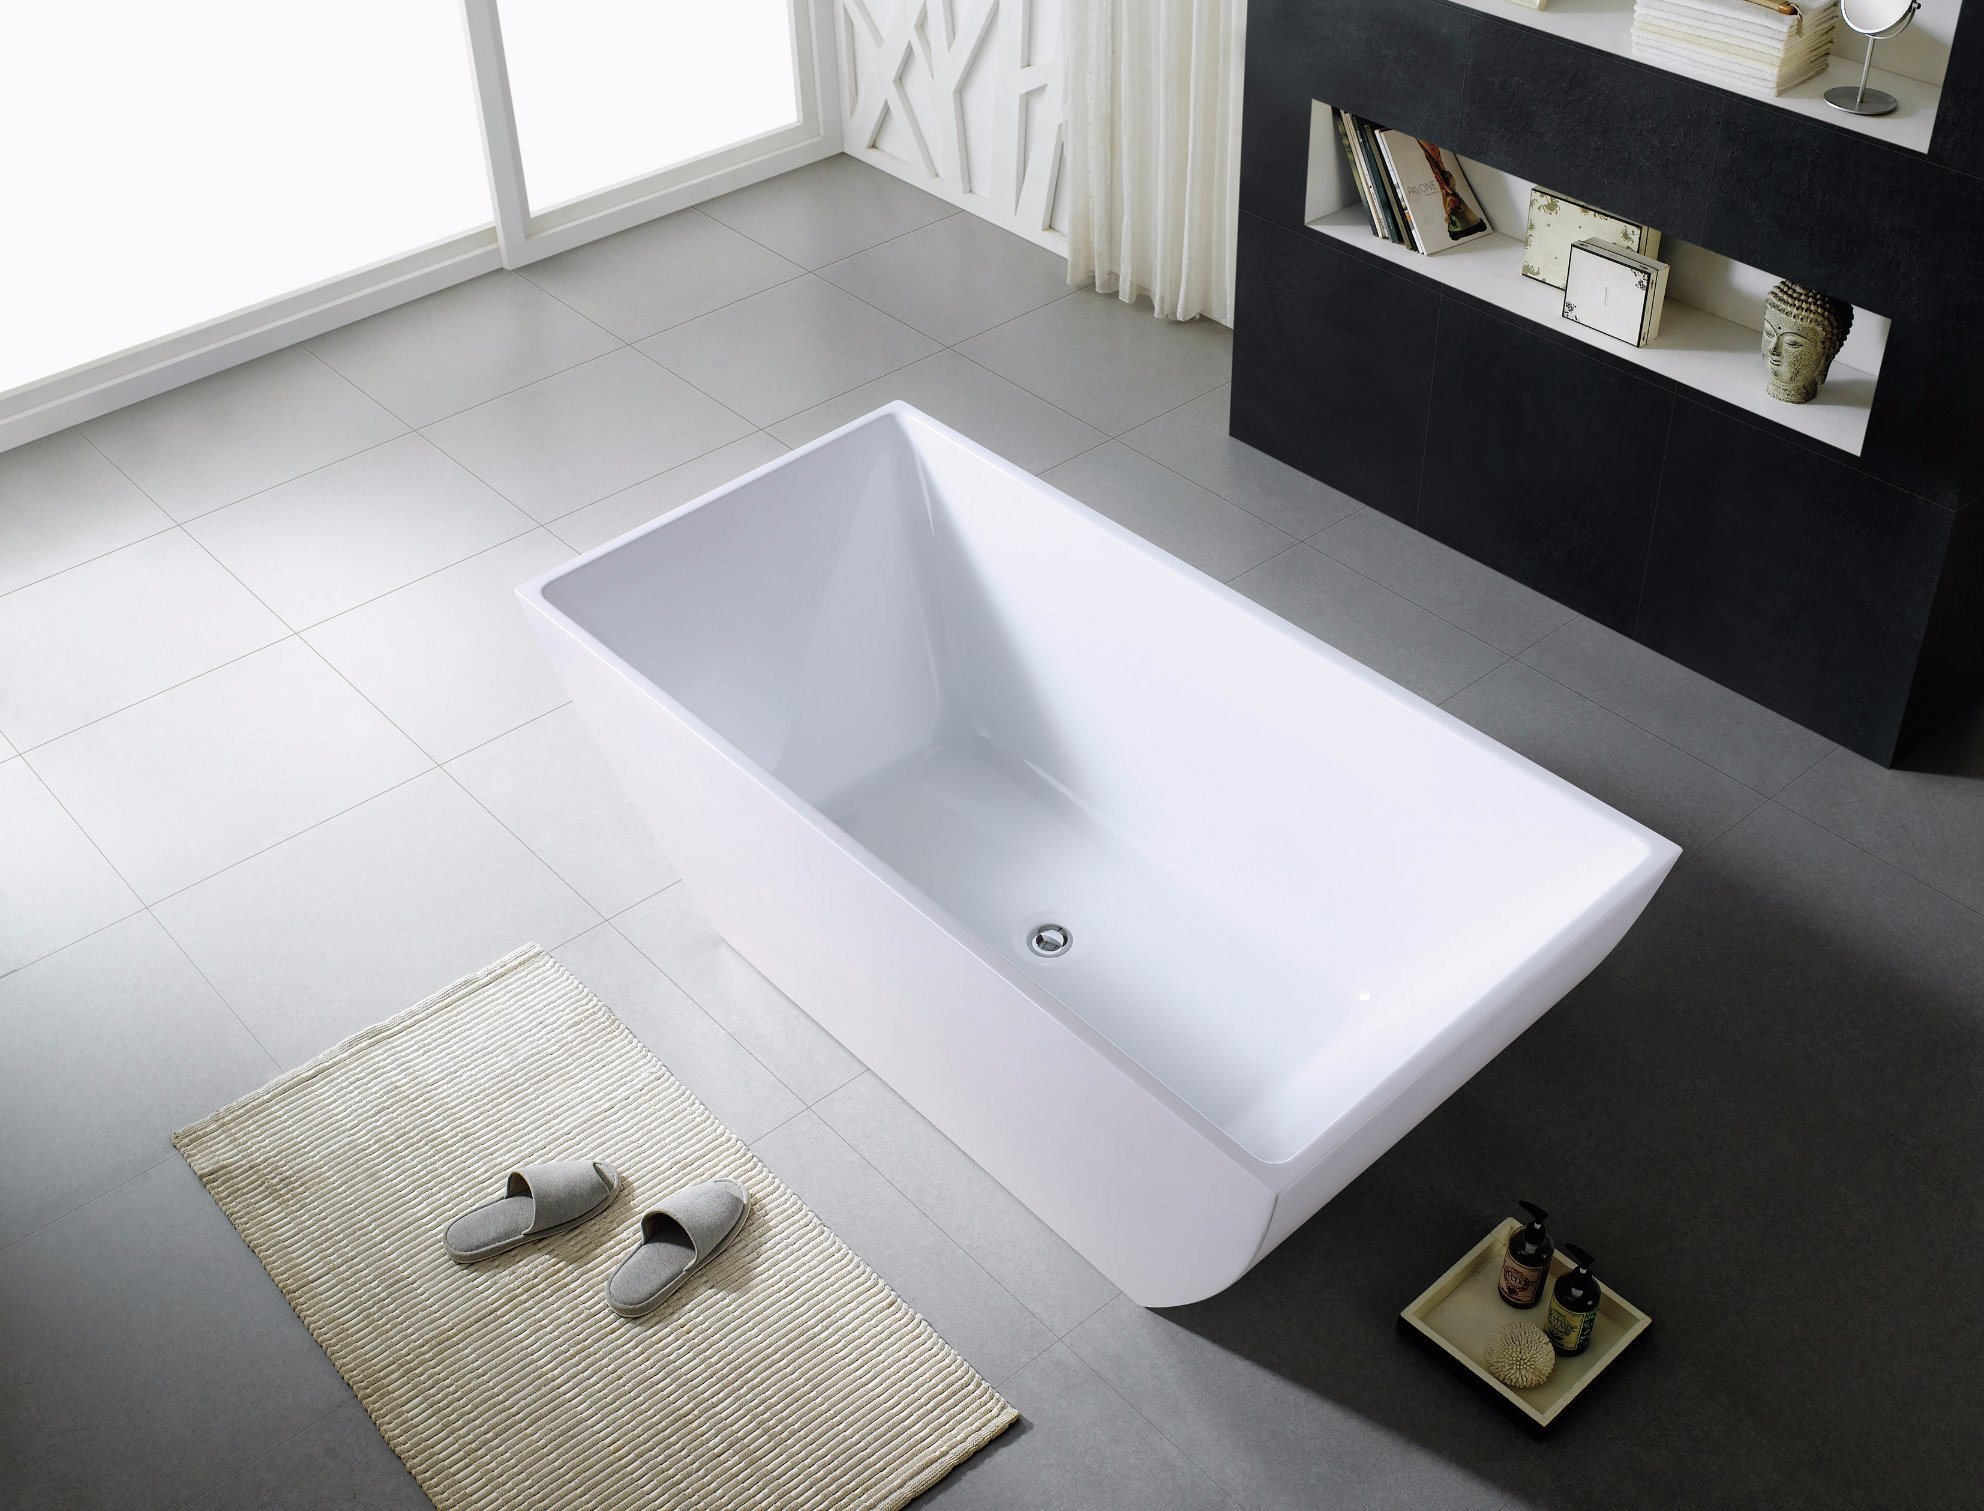 China Bathroom Supplies 1500/1700 Square Freestanding Tub - China ...